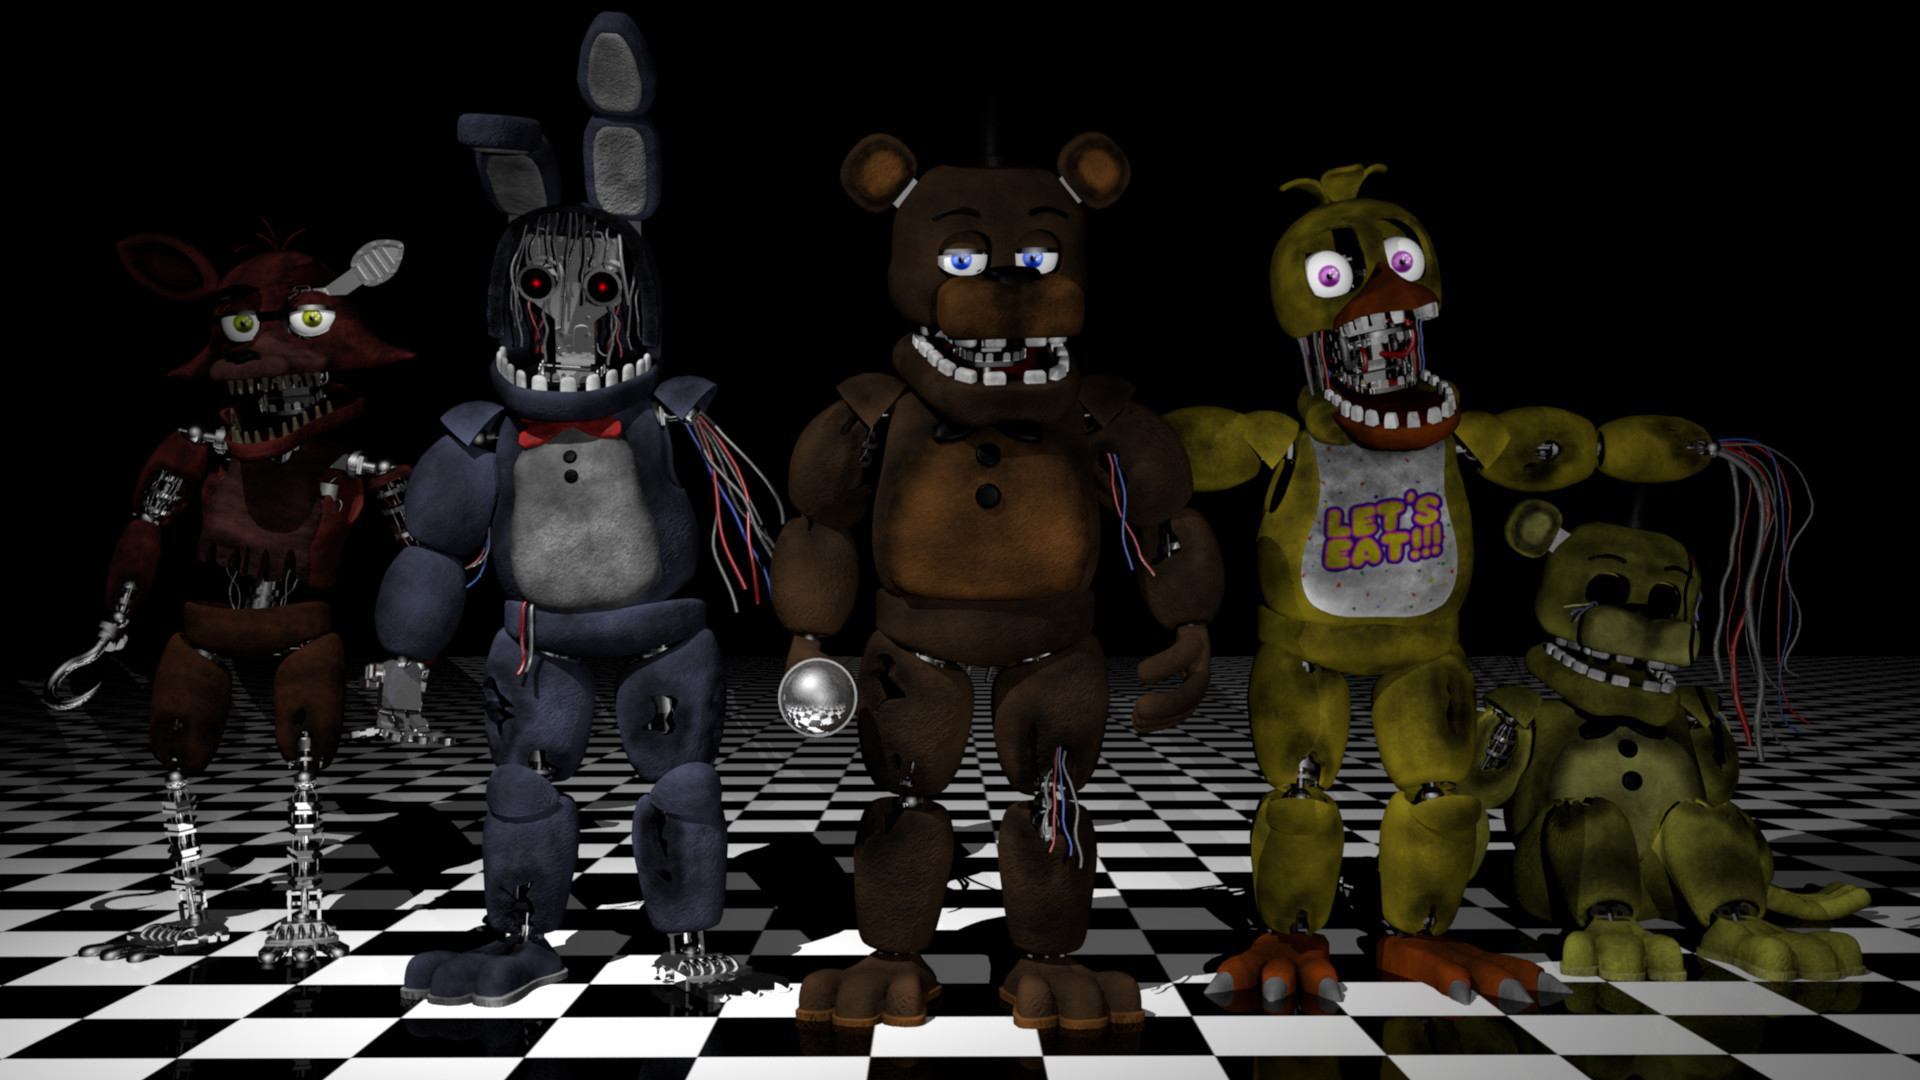 Thomas Honeybell - Five Nights at Freddy's 2 Fan-made